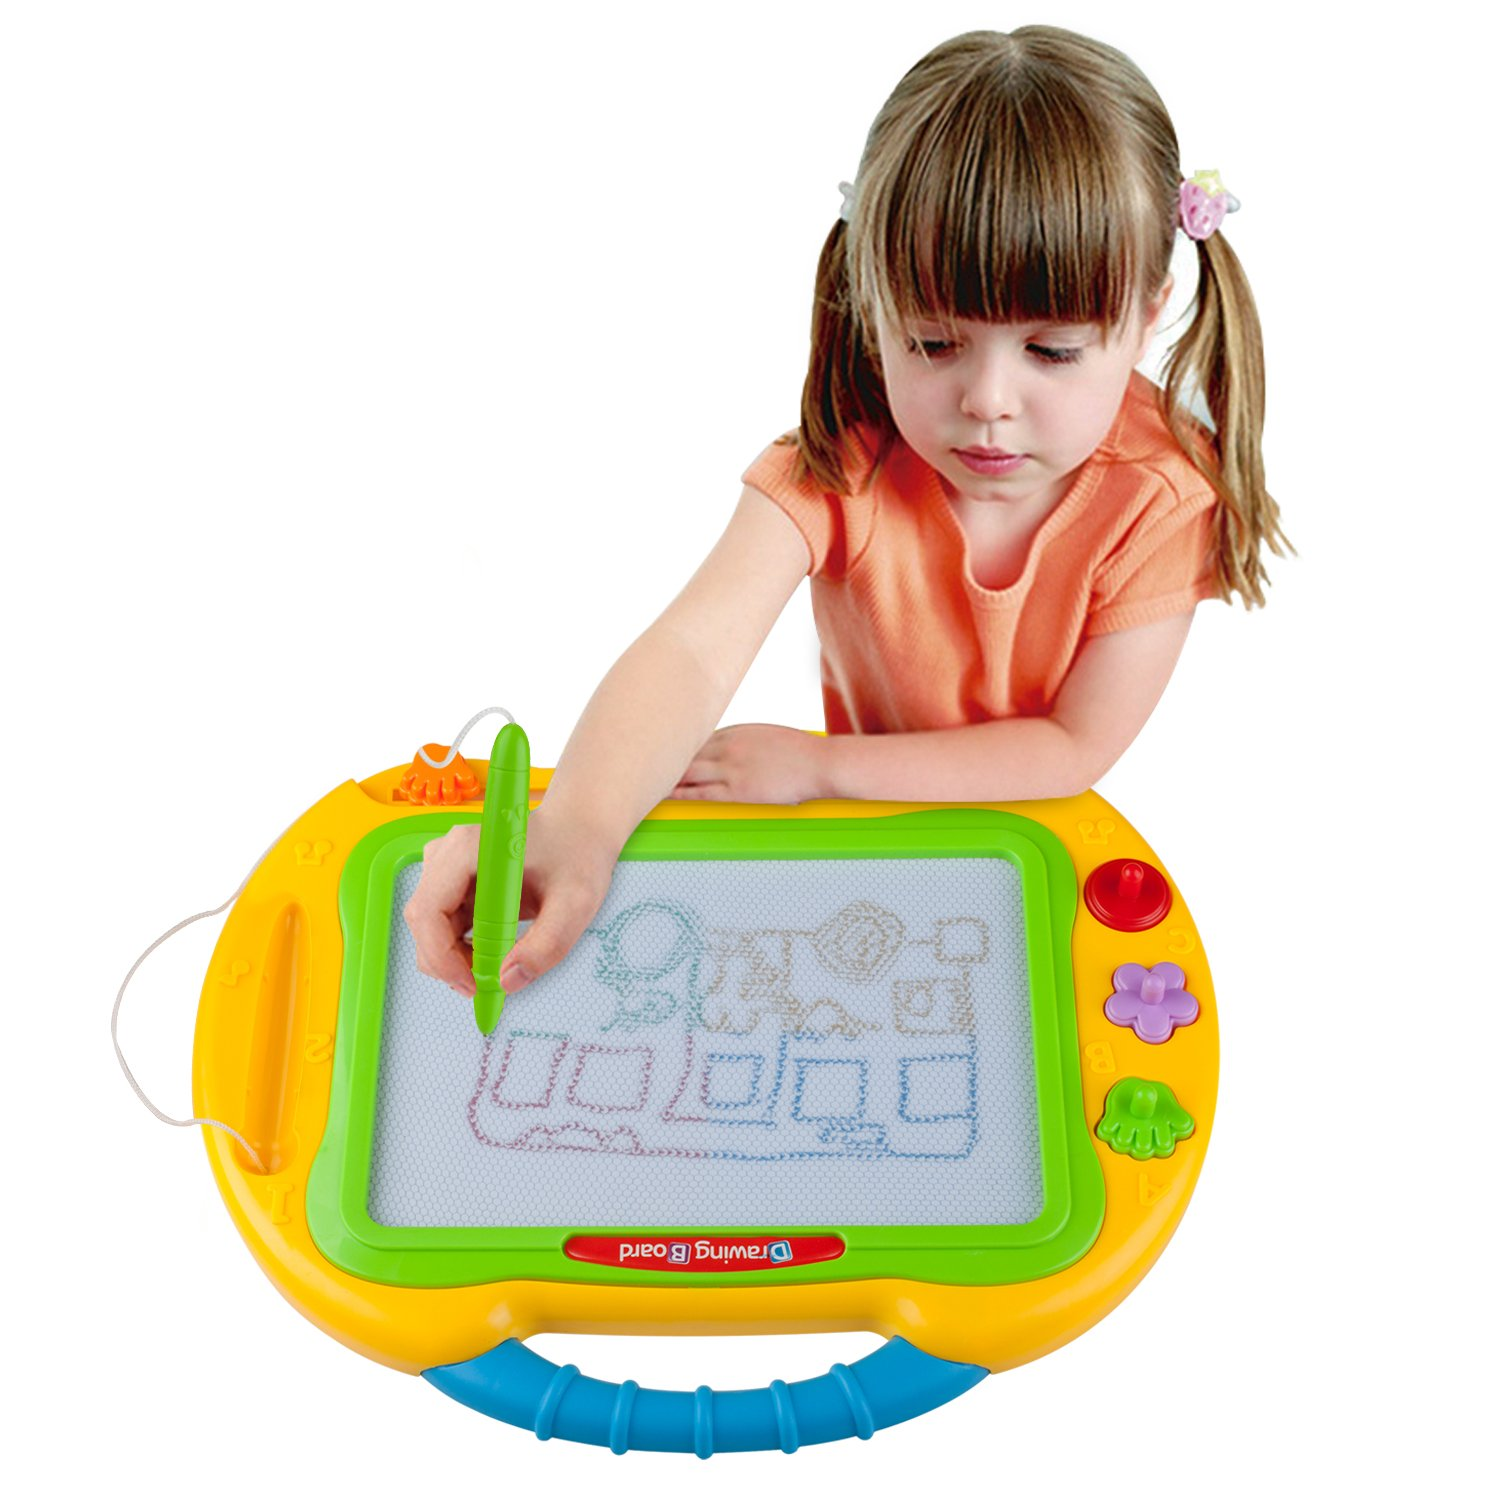 ikidsislands IKS99Y [Travel Size] Color Magnetic Drawing Board for Kids & Toddlers - Non Toxic Large Magna Sketch Doodle Educational Toy for Boys, with 1 Pen & 2 Stamps (Yellow) by ikidsislands (Image #2)